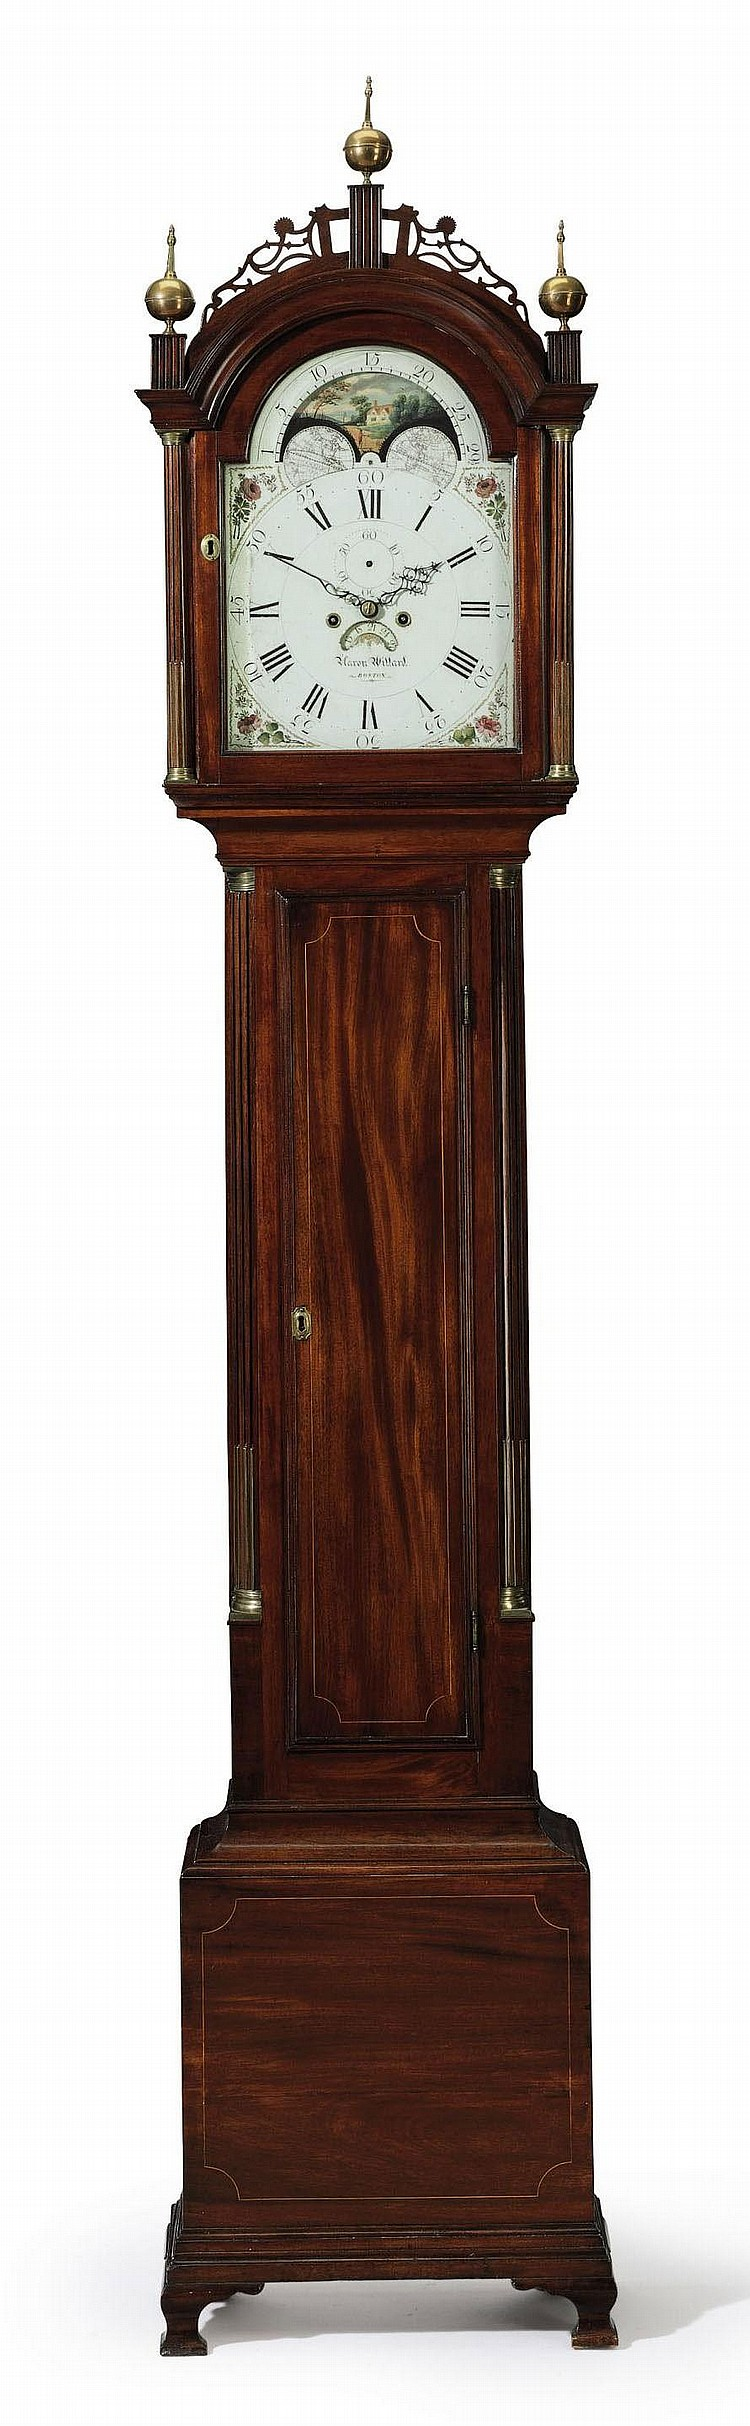 A FEDERAL INLAID AND BRASS-MOUNTED MAHOGANY TALL-CASE CLOCK